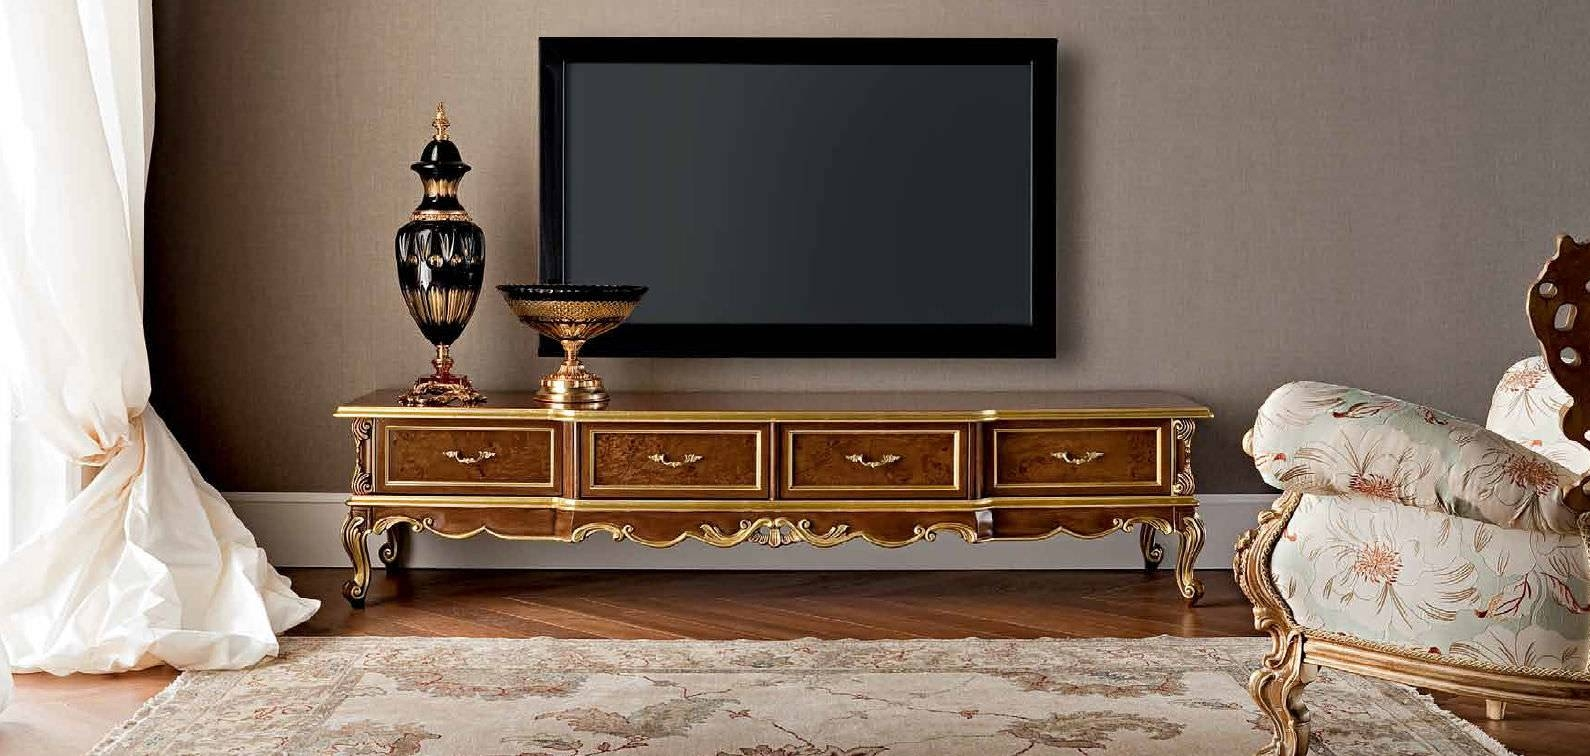 Classic Tv Cabinet / Wooden - .casanova - Modenese Gastone Luxury within Classic Tv Cabinets (Image 7 of 15)